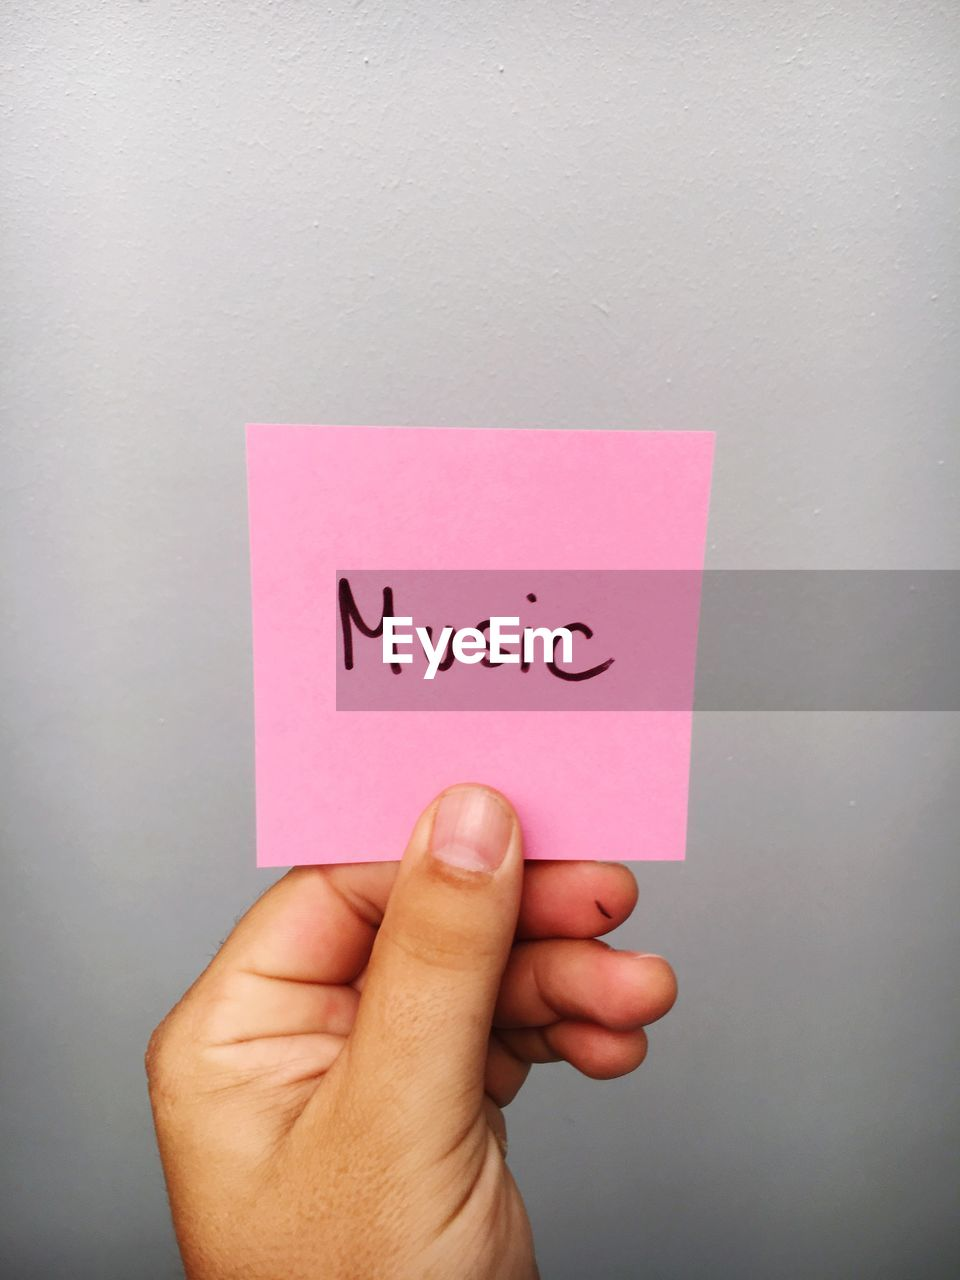 Cropped Hand Of Person Holding Music Text On Adhesive Note Against Gray Background